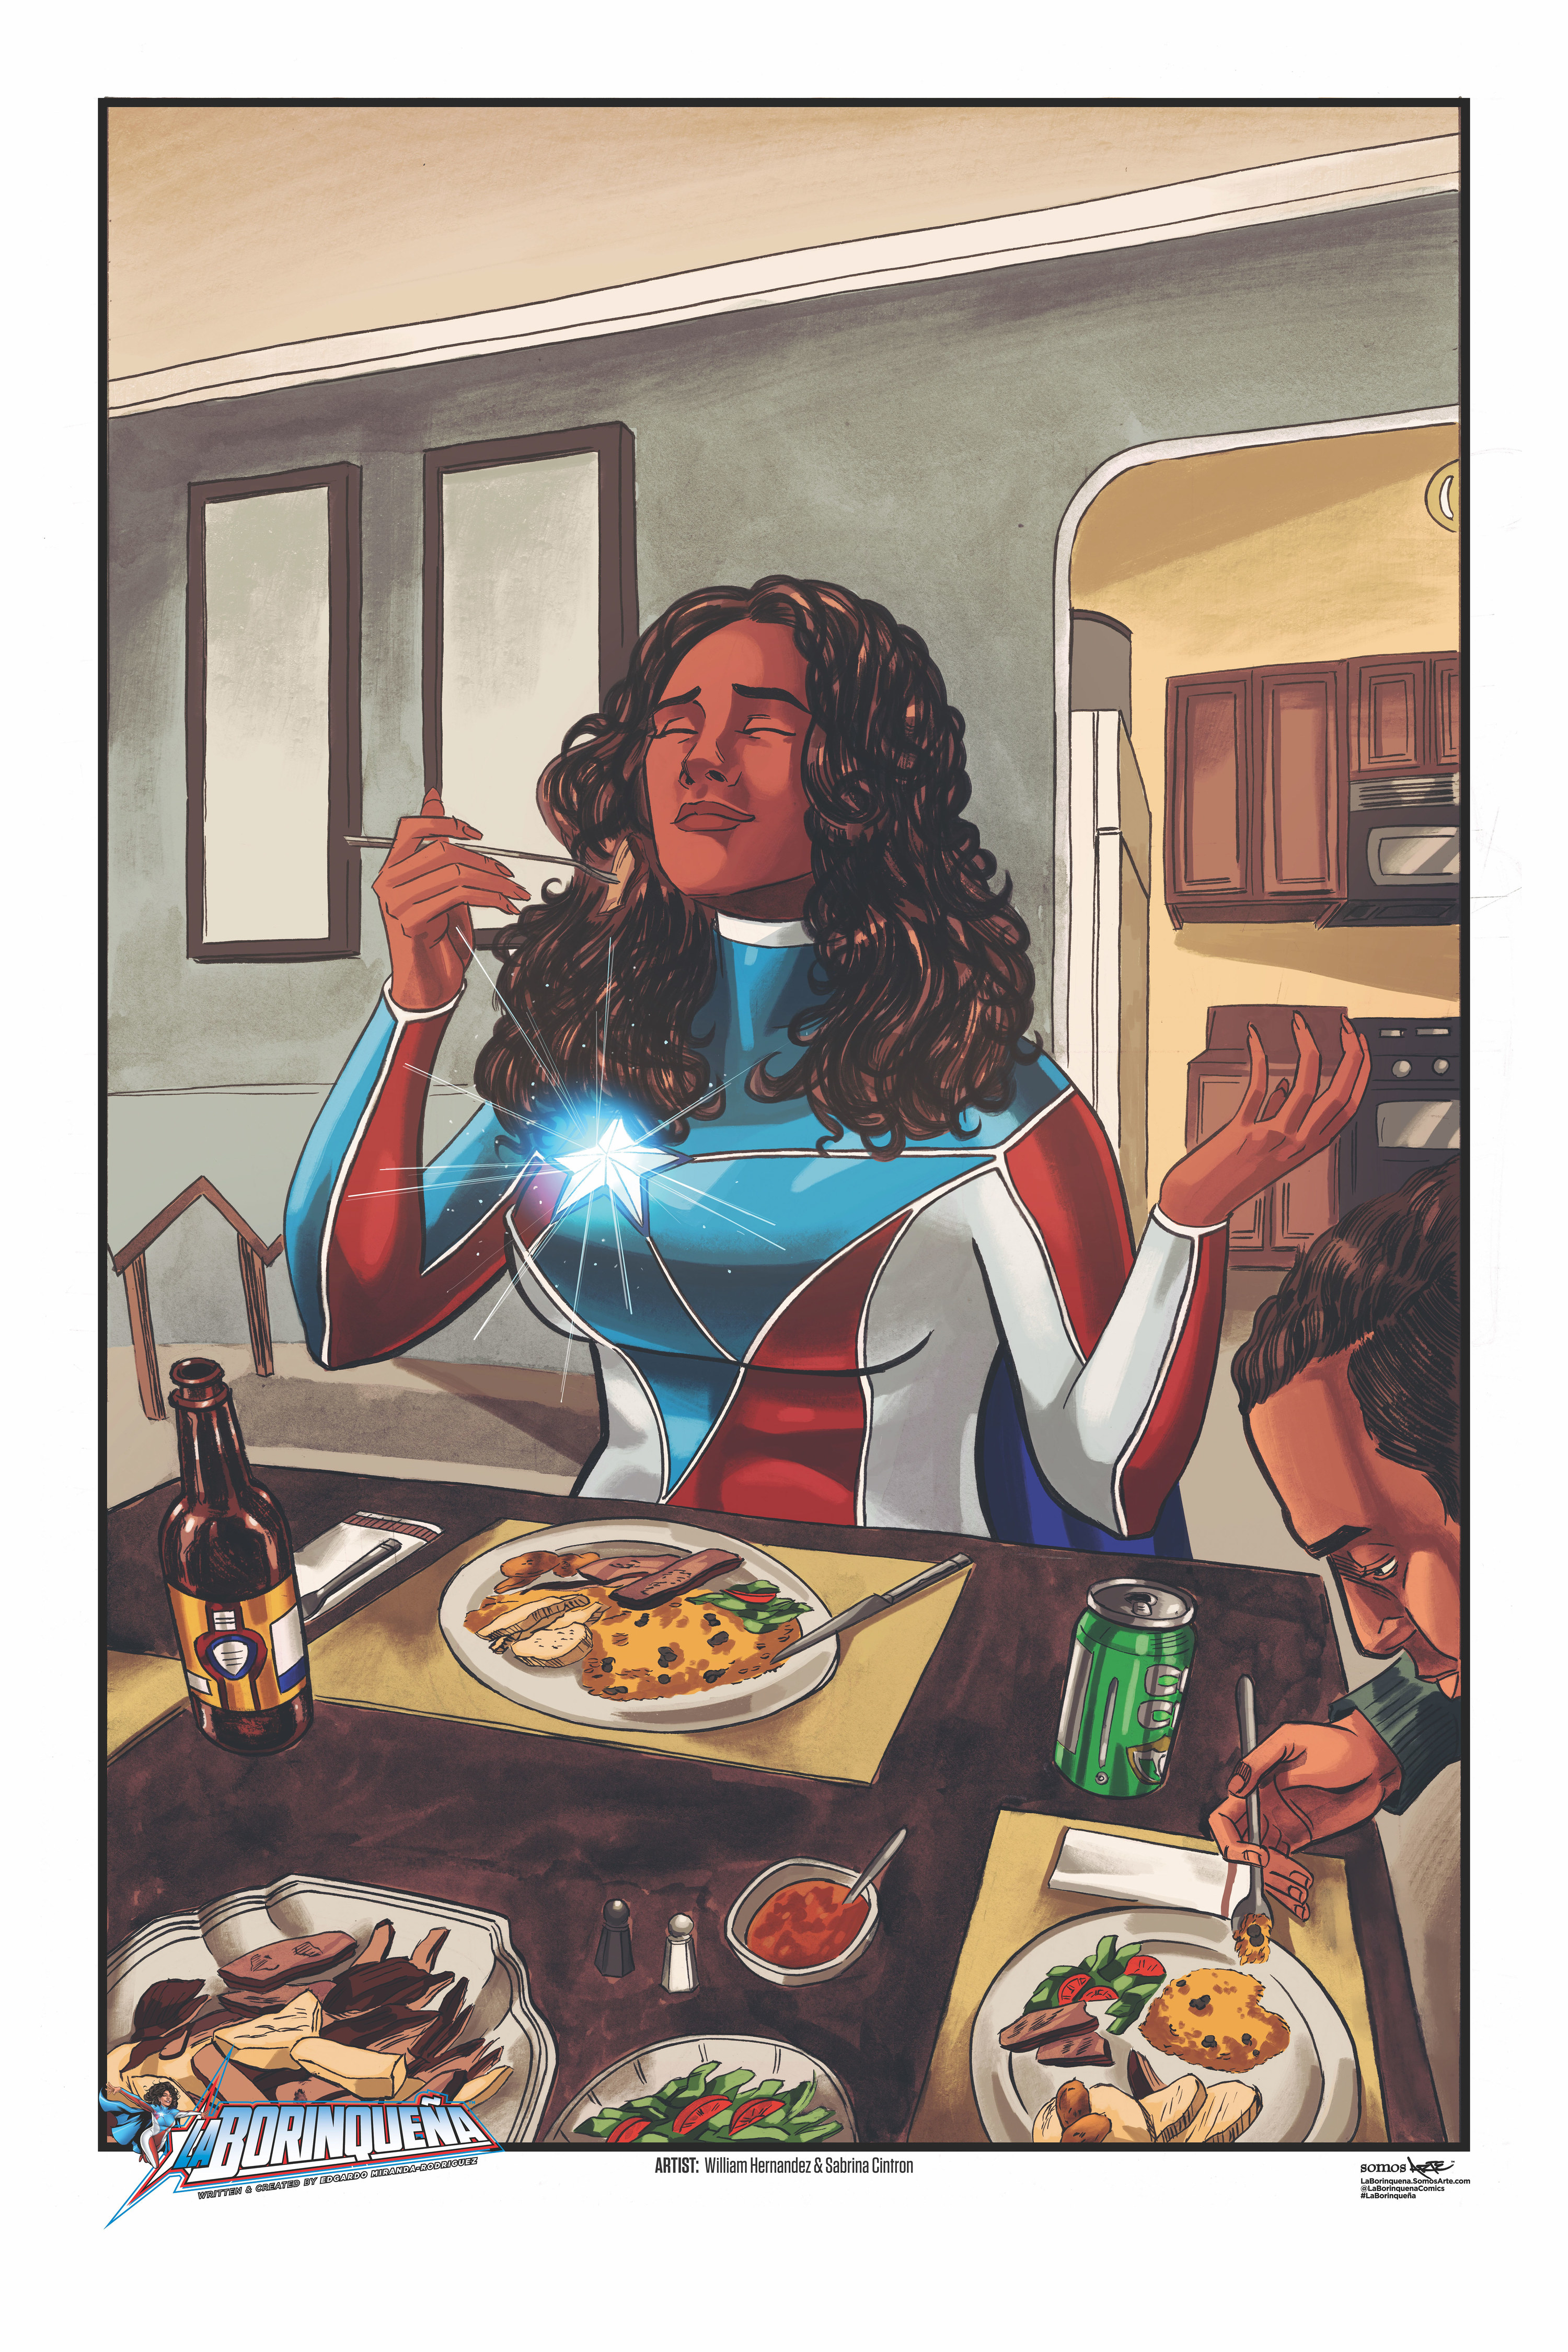 Comic illustration of character named Marisol Rios De La Luz eating at the diner table with someone else. She appears to look happy and content with her meal with her super hero cape on.